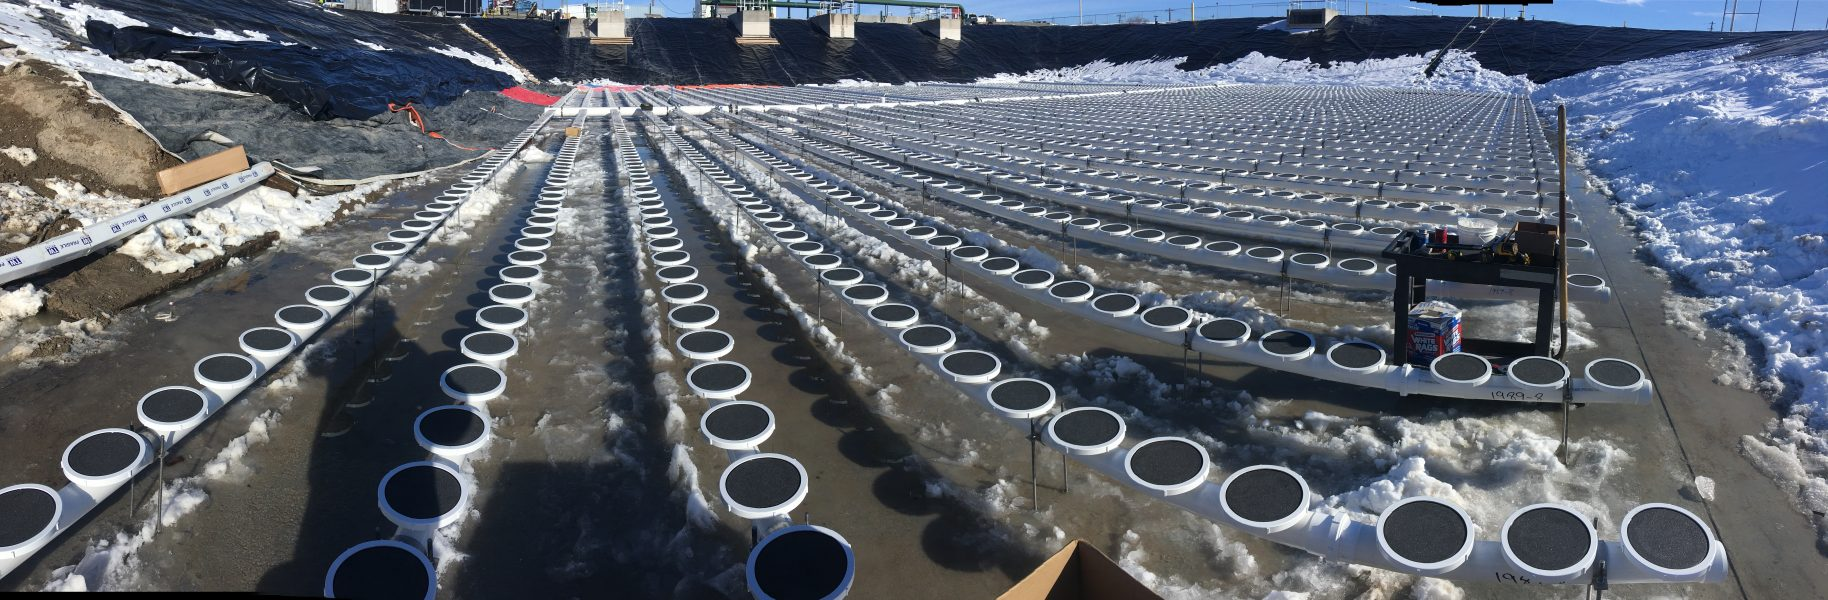 Aeration Diffusers